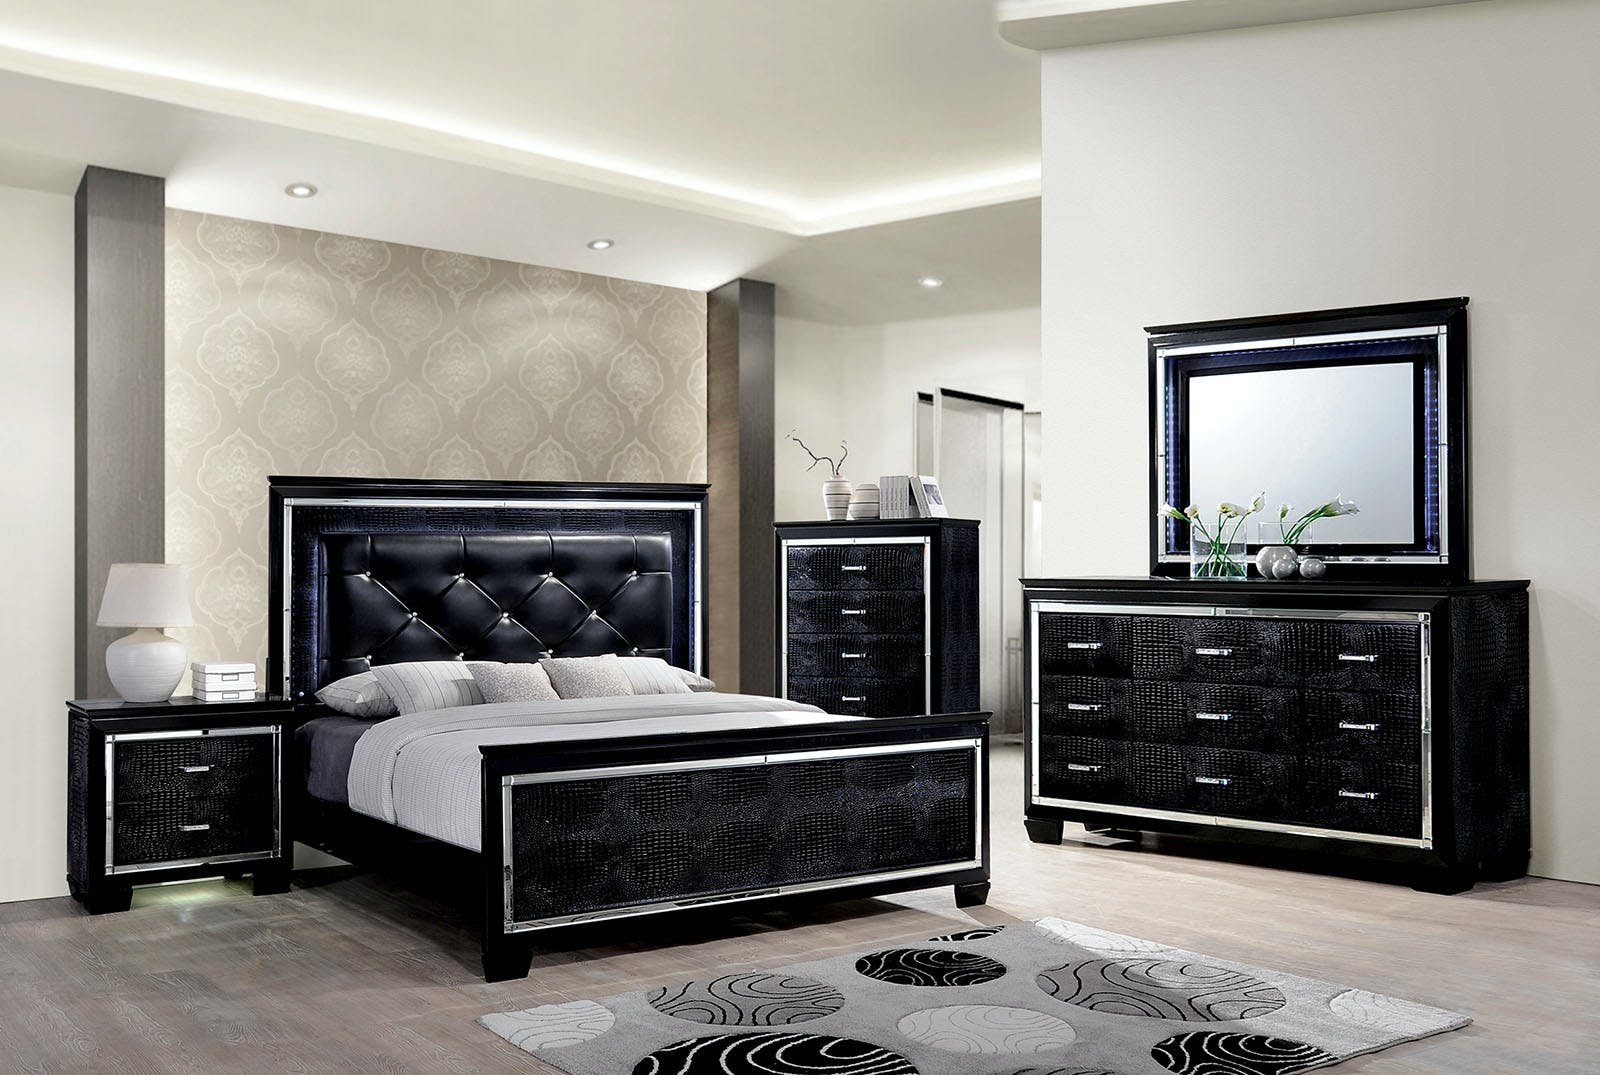 Furniture Of America Bedroom Cal King Bed Headboard Cm7979bk Ck Hb The Furniture Mall Duluth